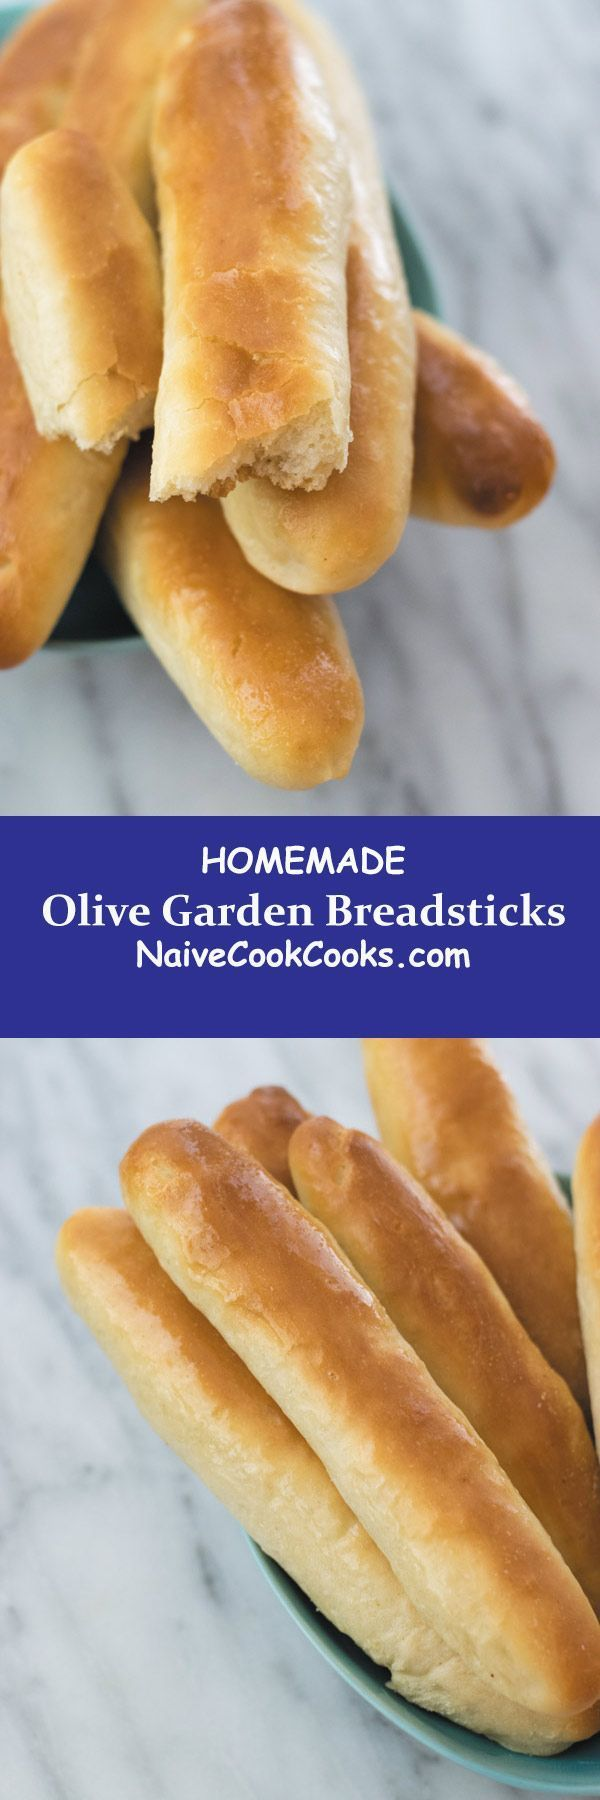 17 best images about copycat recipes on pinterest cracker barrel chicken taco bells and copy for Olive garden breadsticks recipe